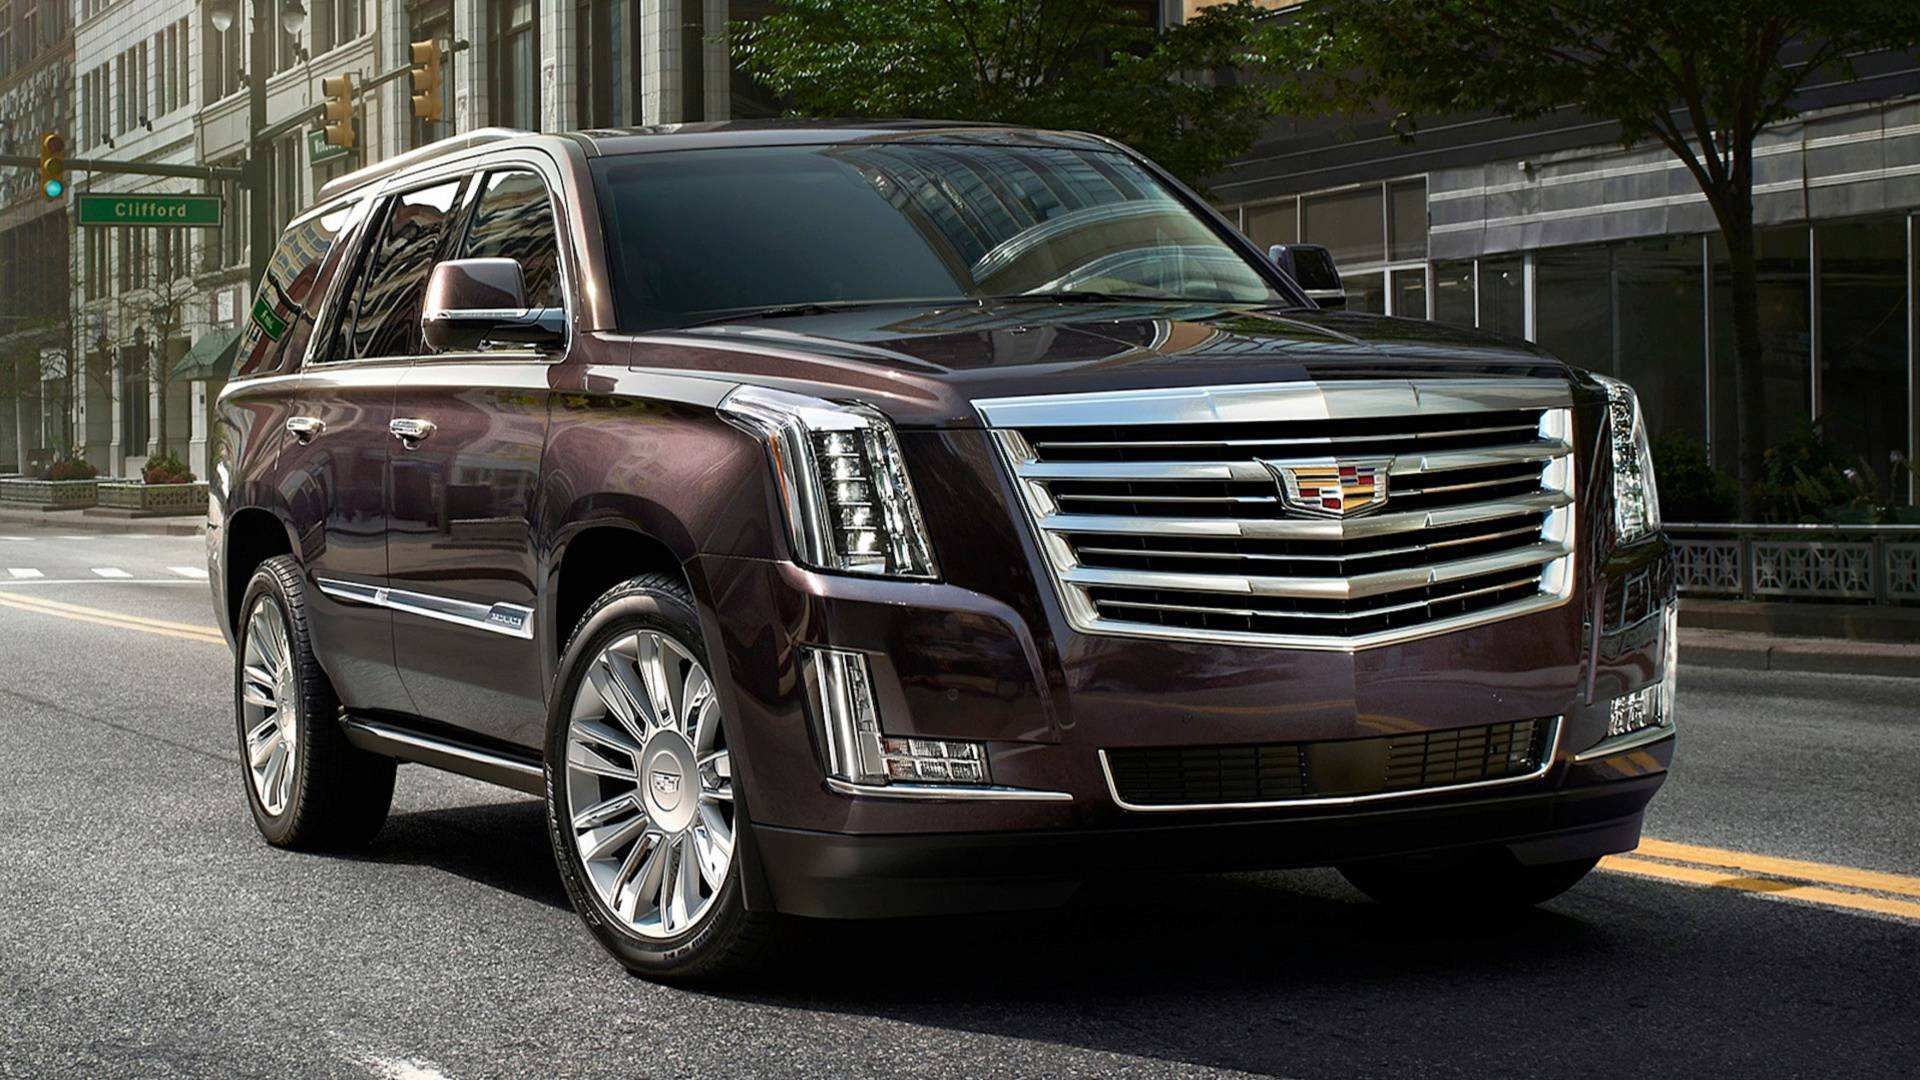 34 New Release Date For 2020 Cadillac Escalade Images